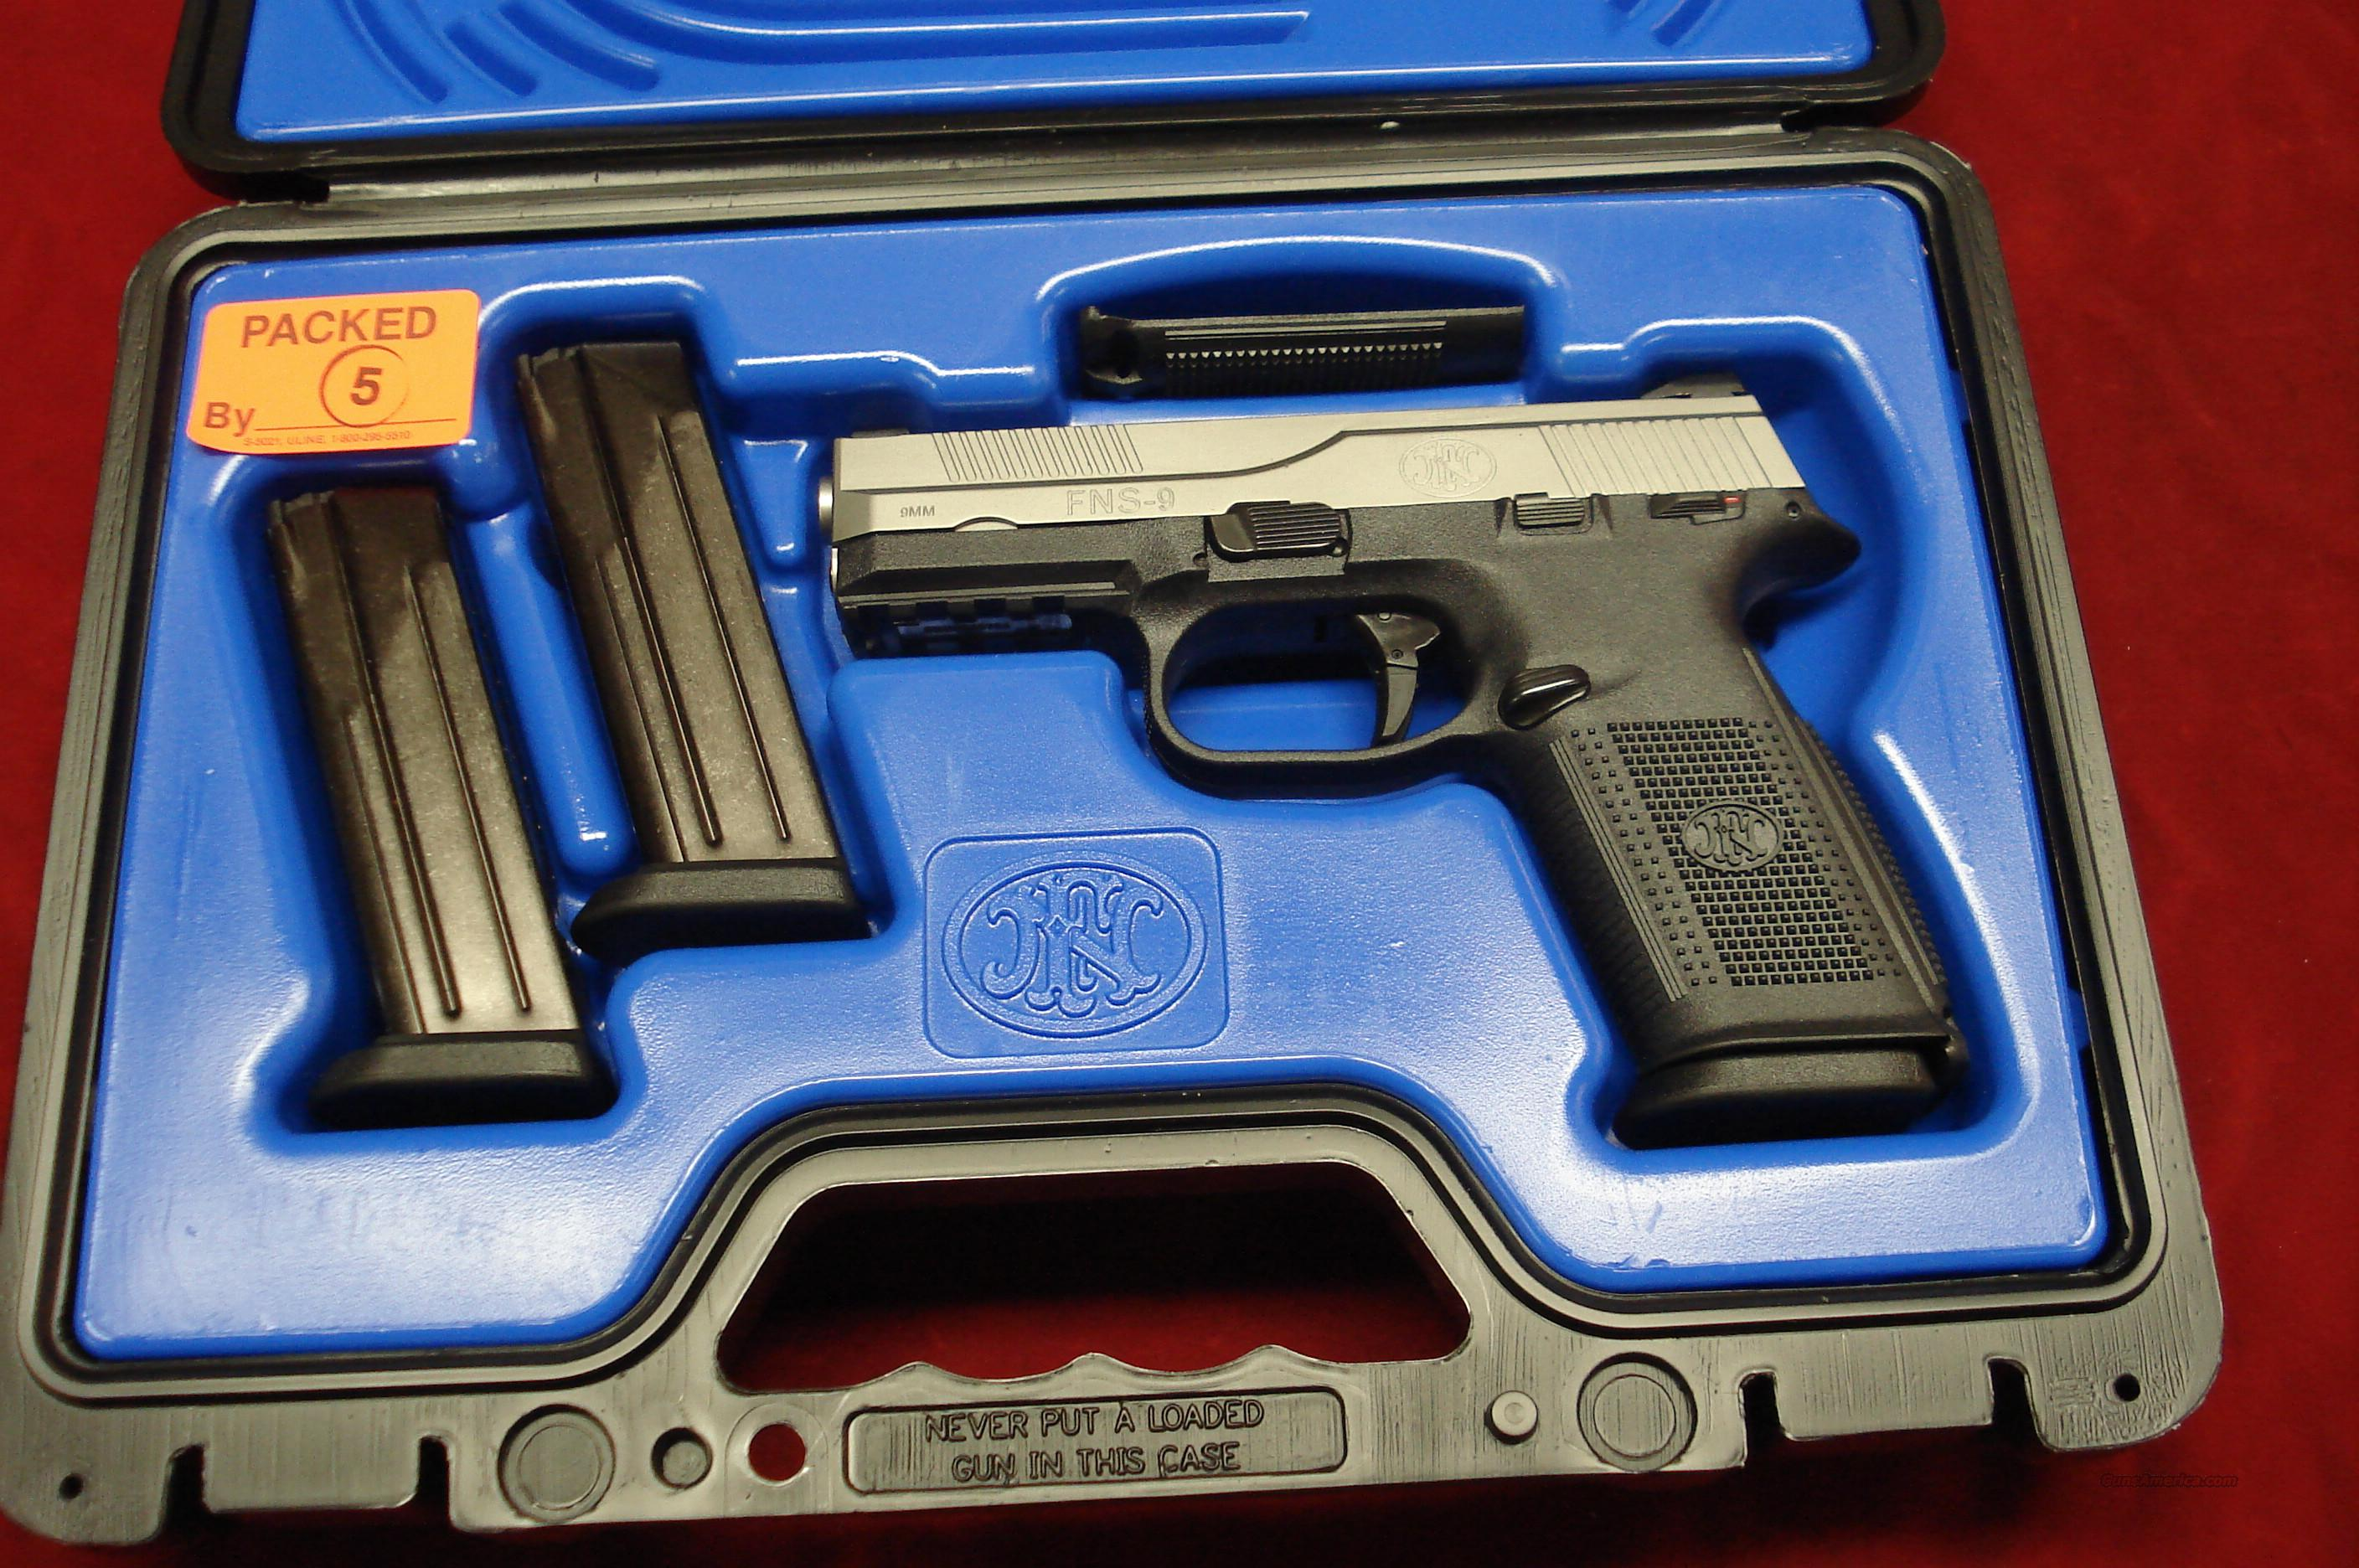 FN FNS-9 9MM STAINLESS NEW  Guns > Pistols > FNH - Fabrique Nationale (FN) Pistols > FNP